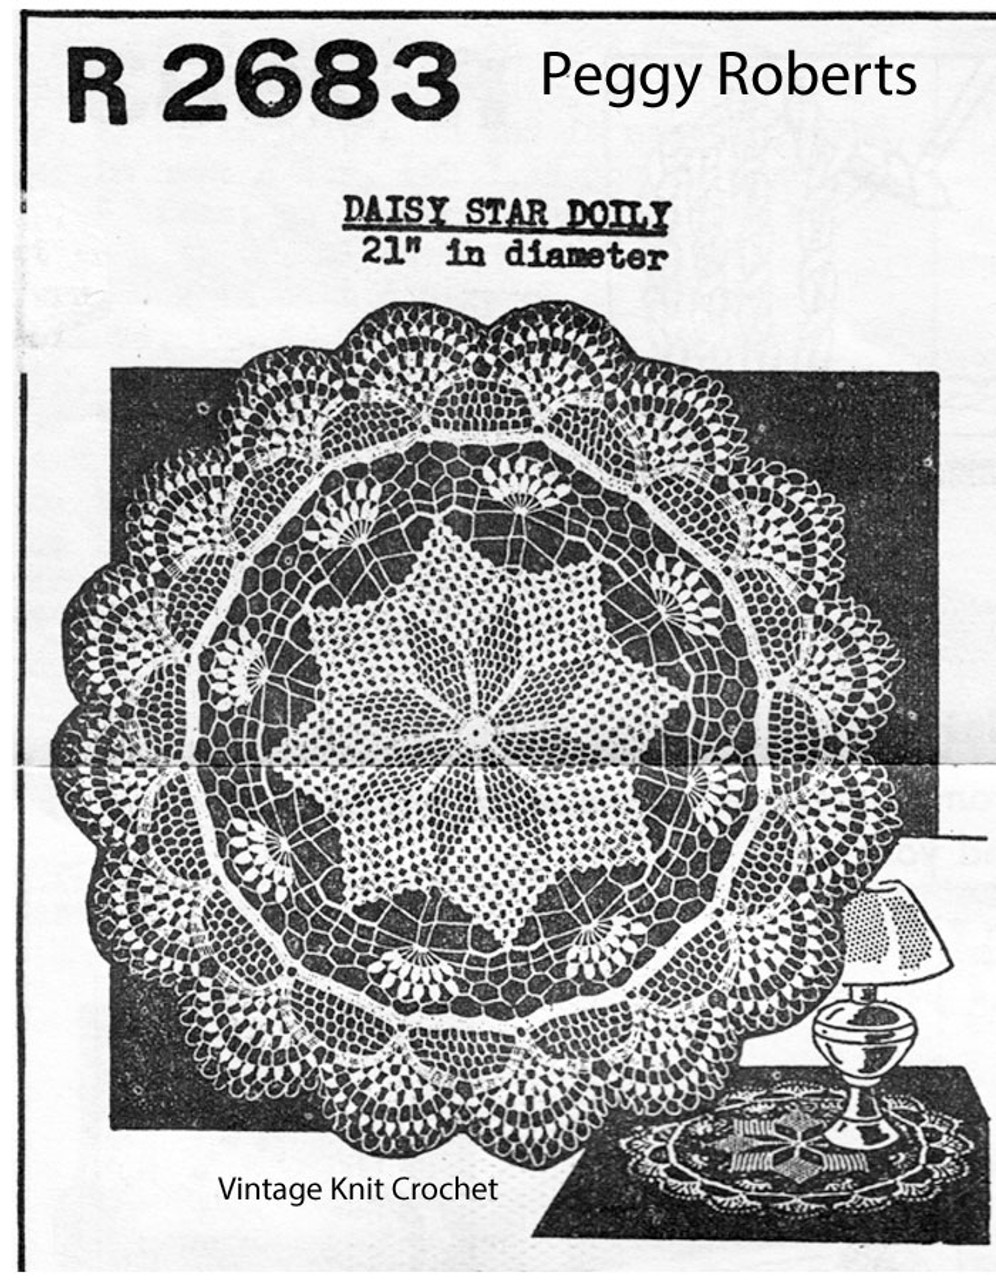 Daisy Star Crochet Doily Pattern, Peggy Roberts R-2683